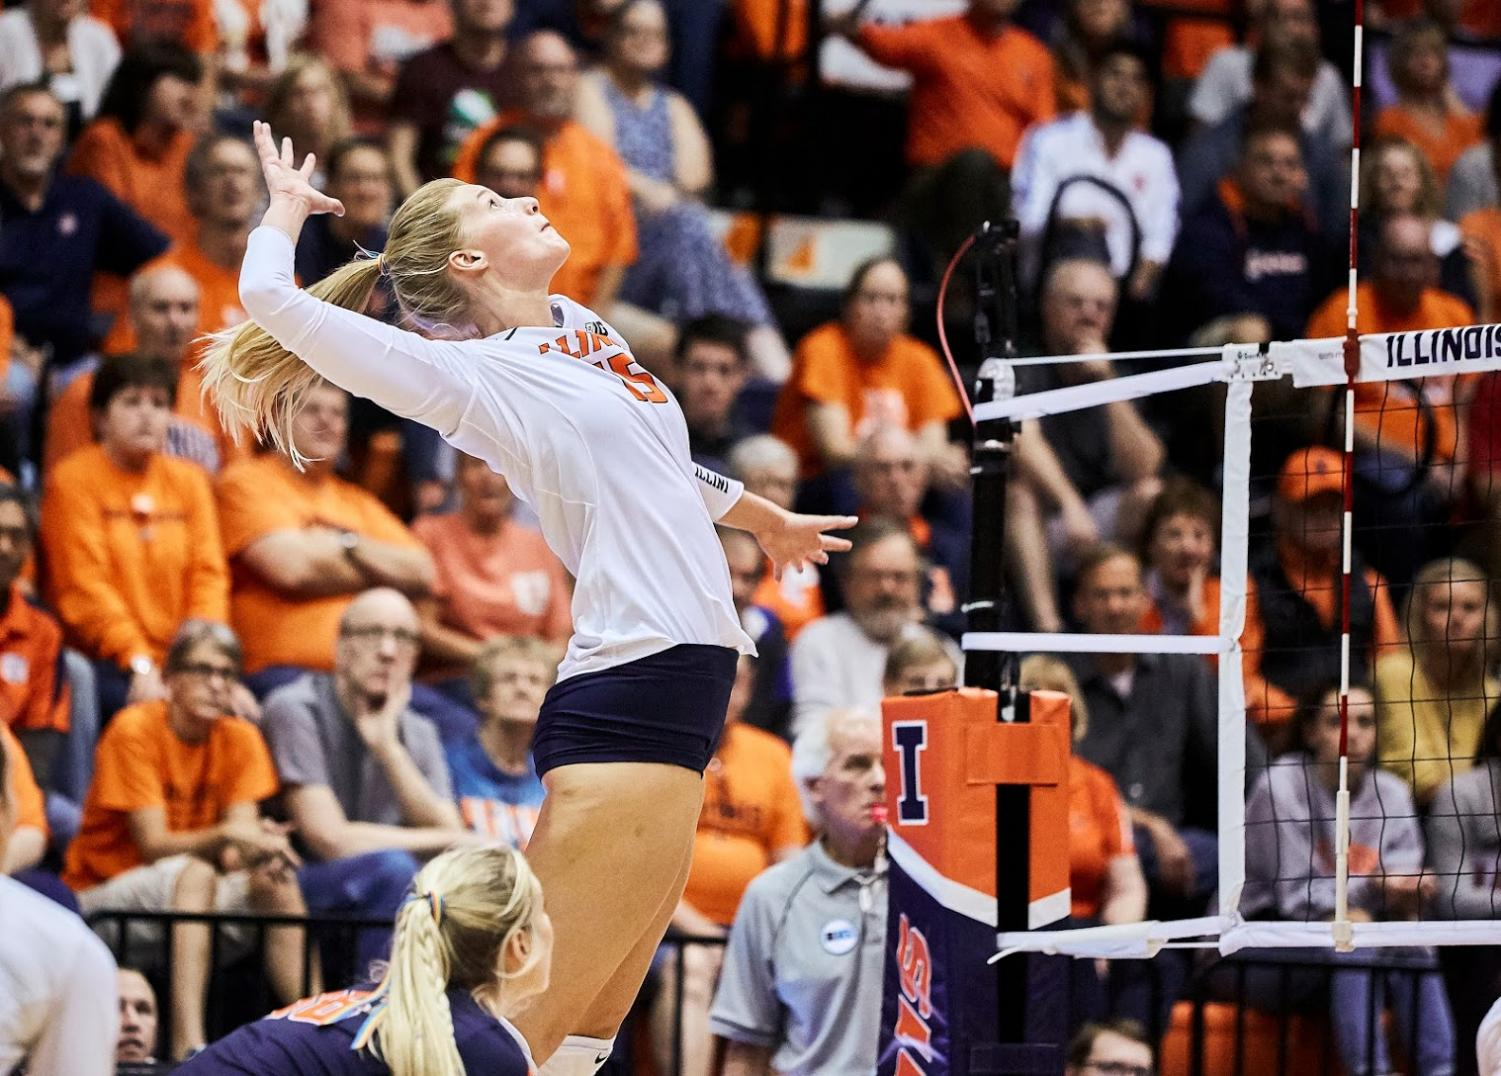 Megan Cooney rises up to spike the ball on Wednesday. The Illini lost 1-3.